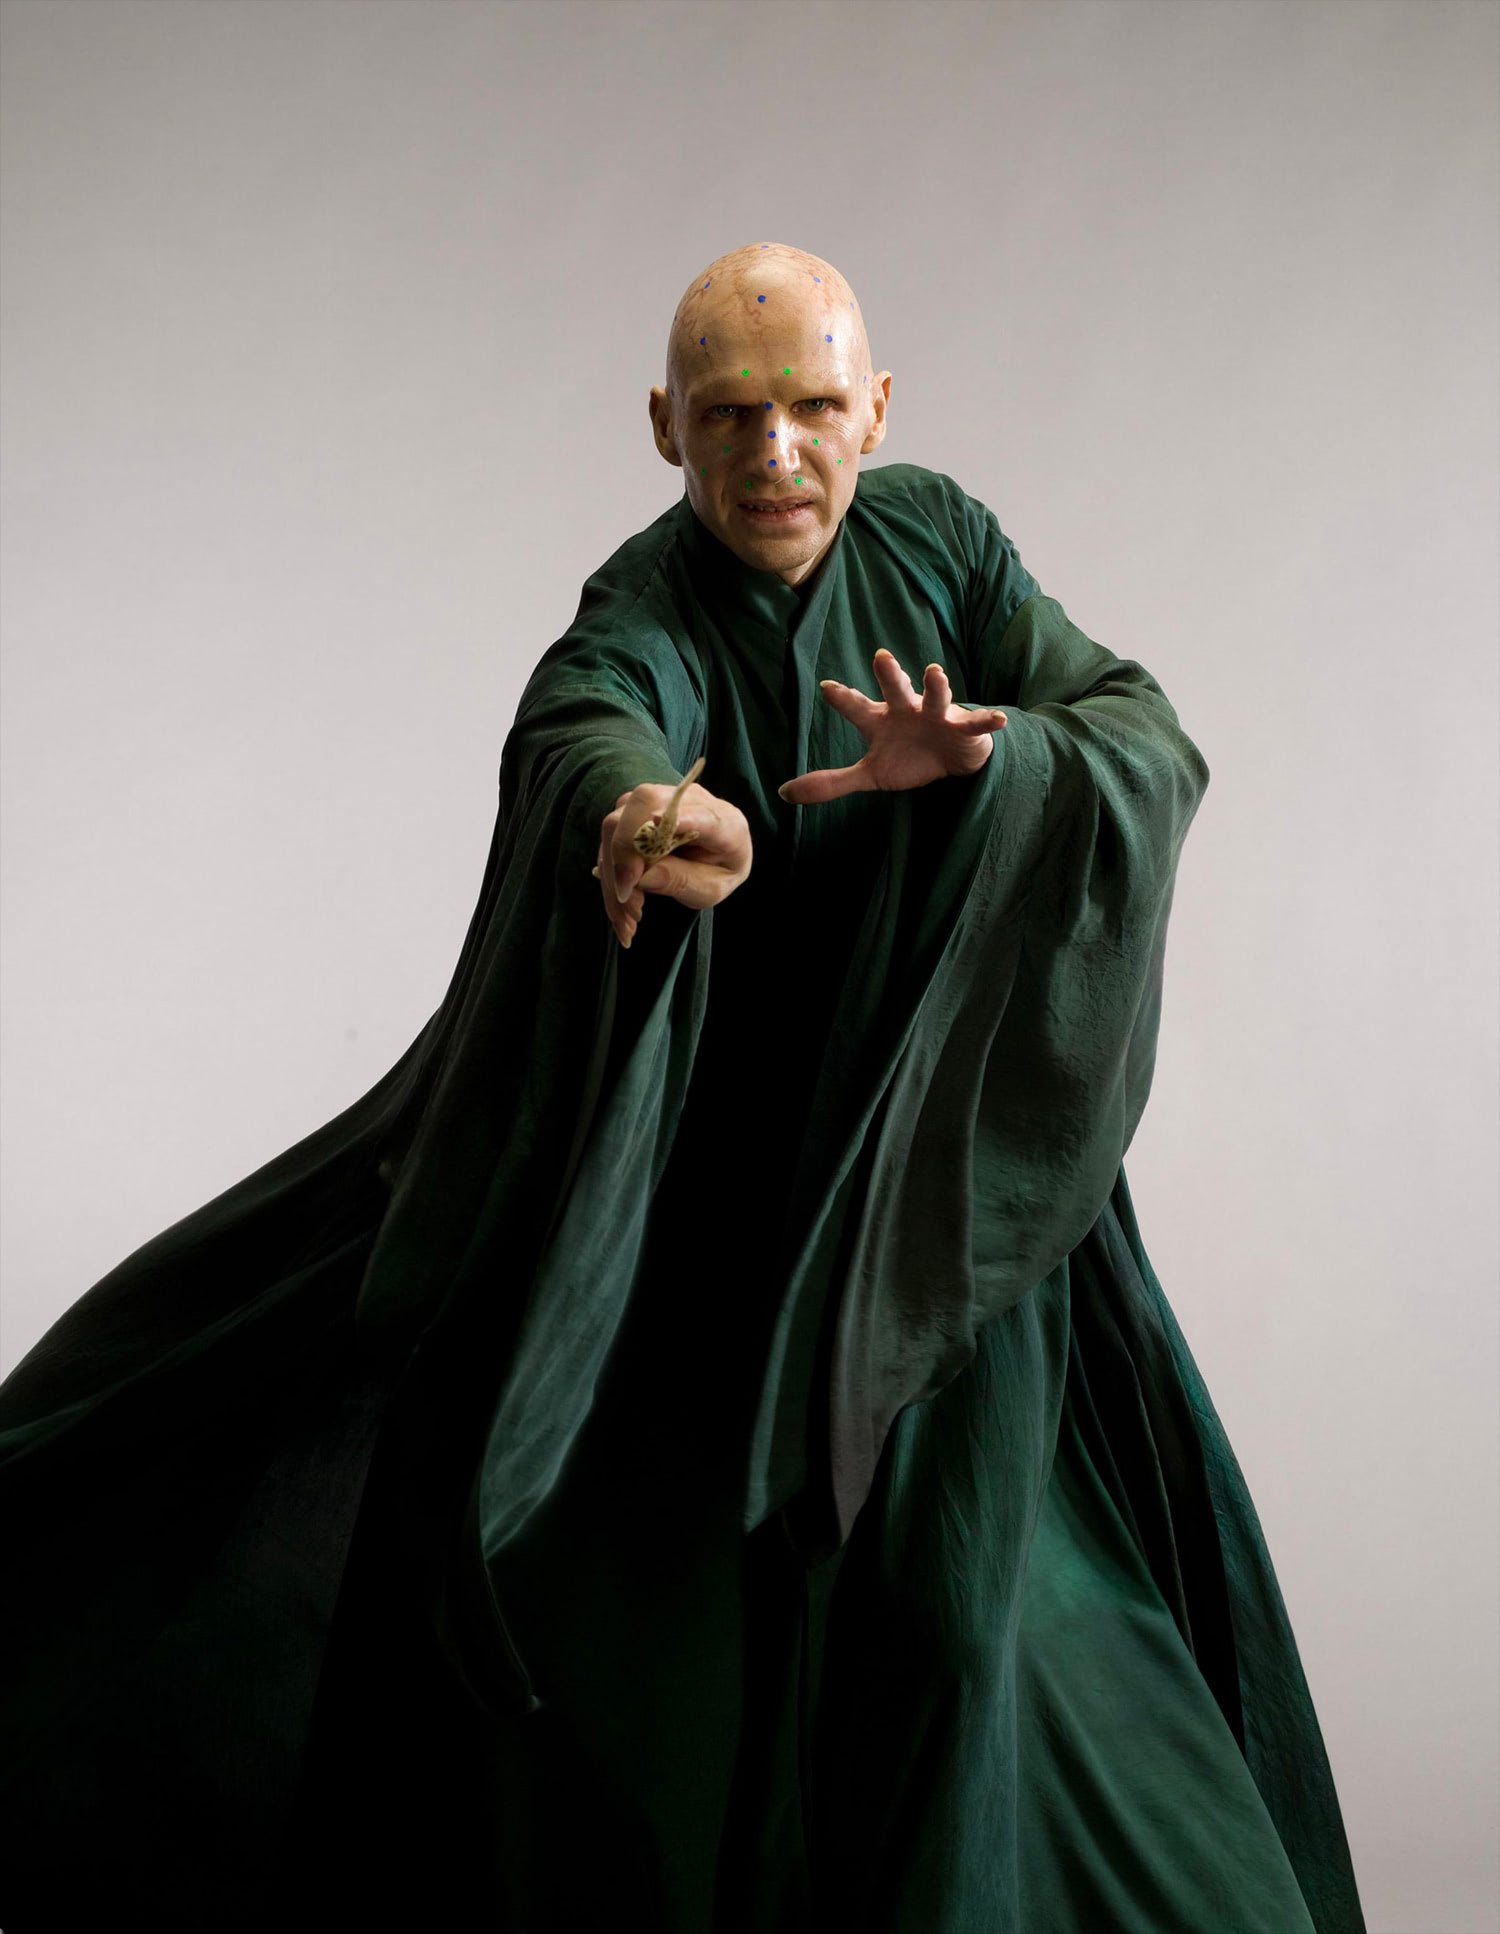 Portrait of Lord Voldemort